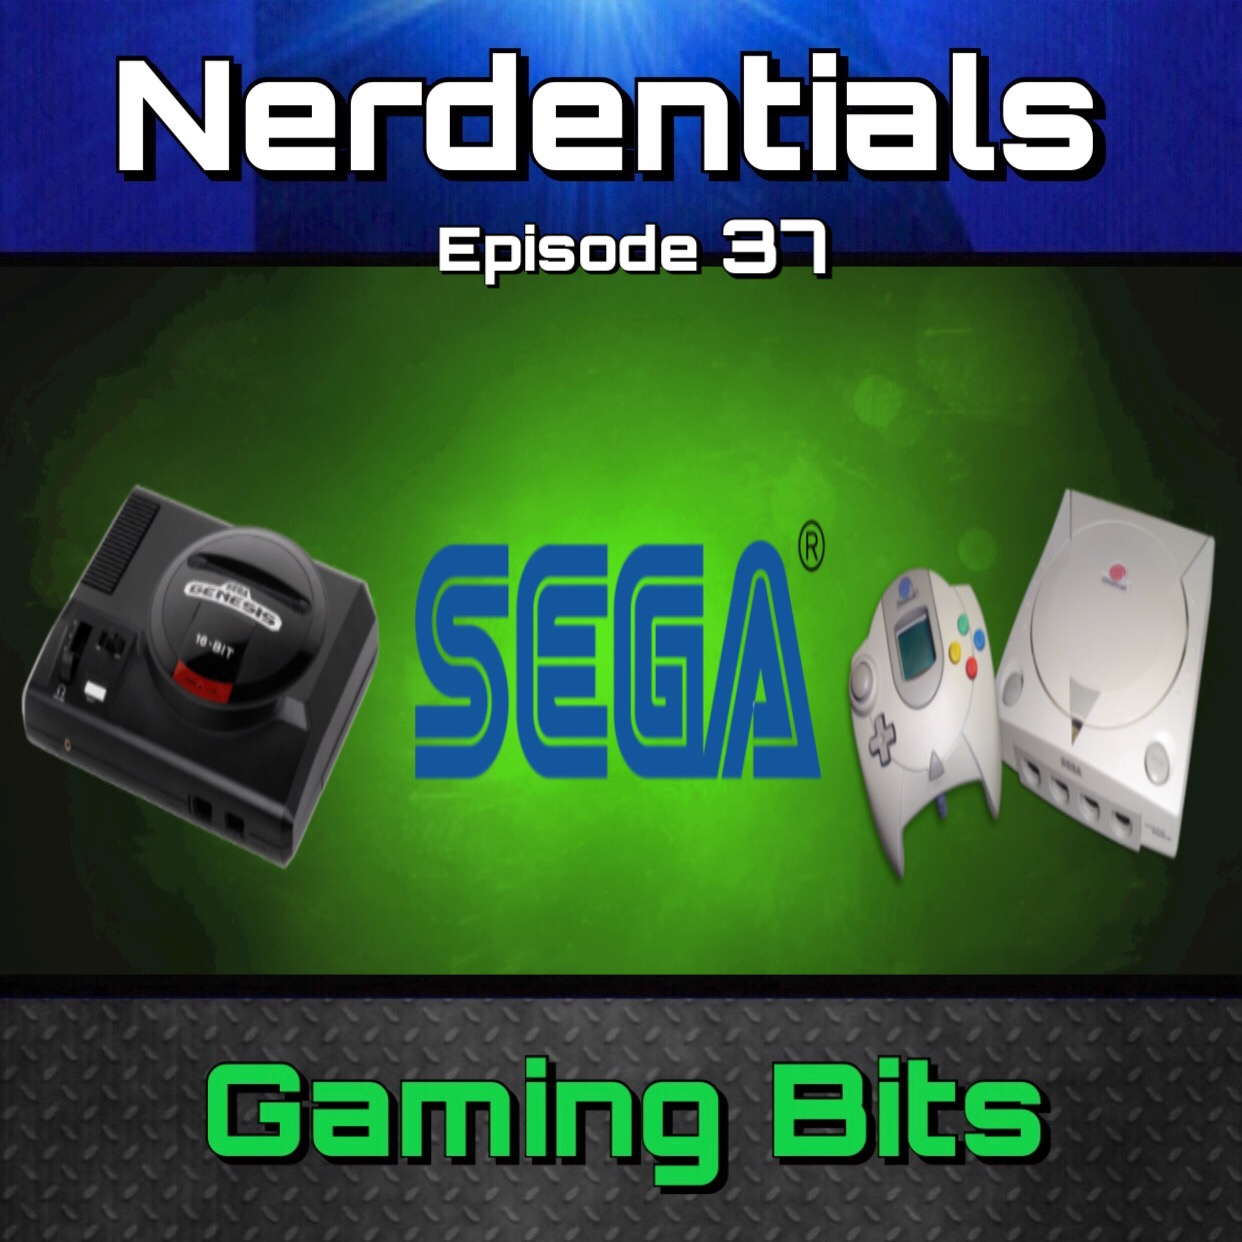 - Welcome to Nerdentials! Your weekly dose of the nerdy essentials. Covering Film, TV, Video Games and Comics. This week we bring you the first of many mini-sodes, where sometimes a tangent from a previous recording ended up being a full topic! This time we discuss The rise and fall of Sega as a hardware company and then reminisce on whether Sony handhelds were good or not.